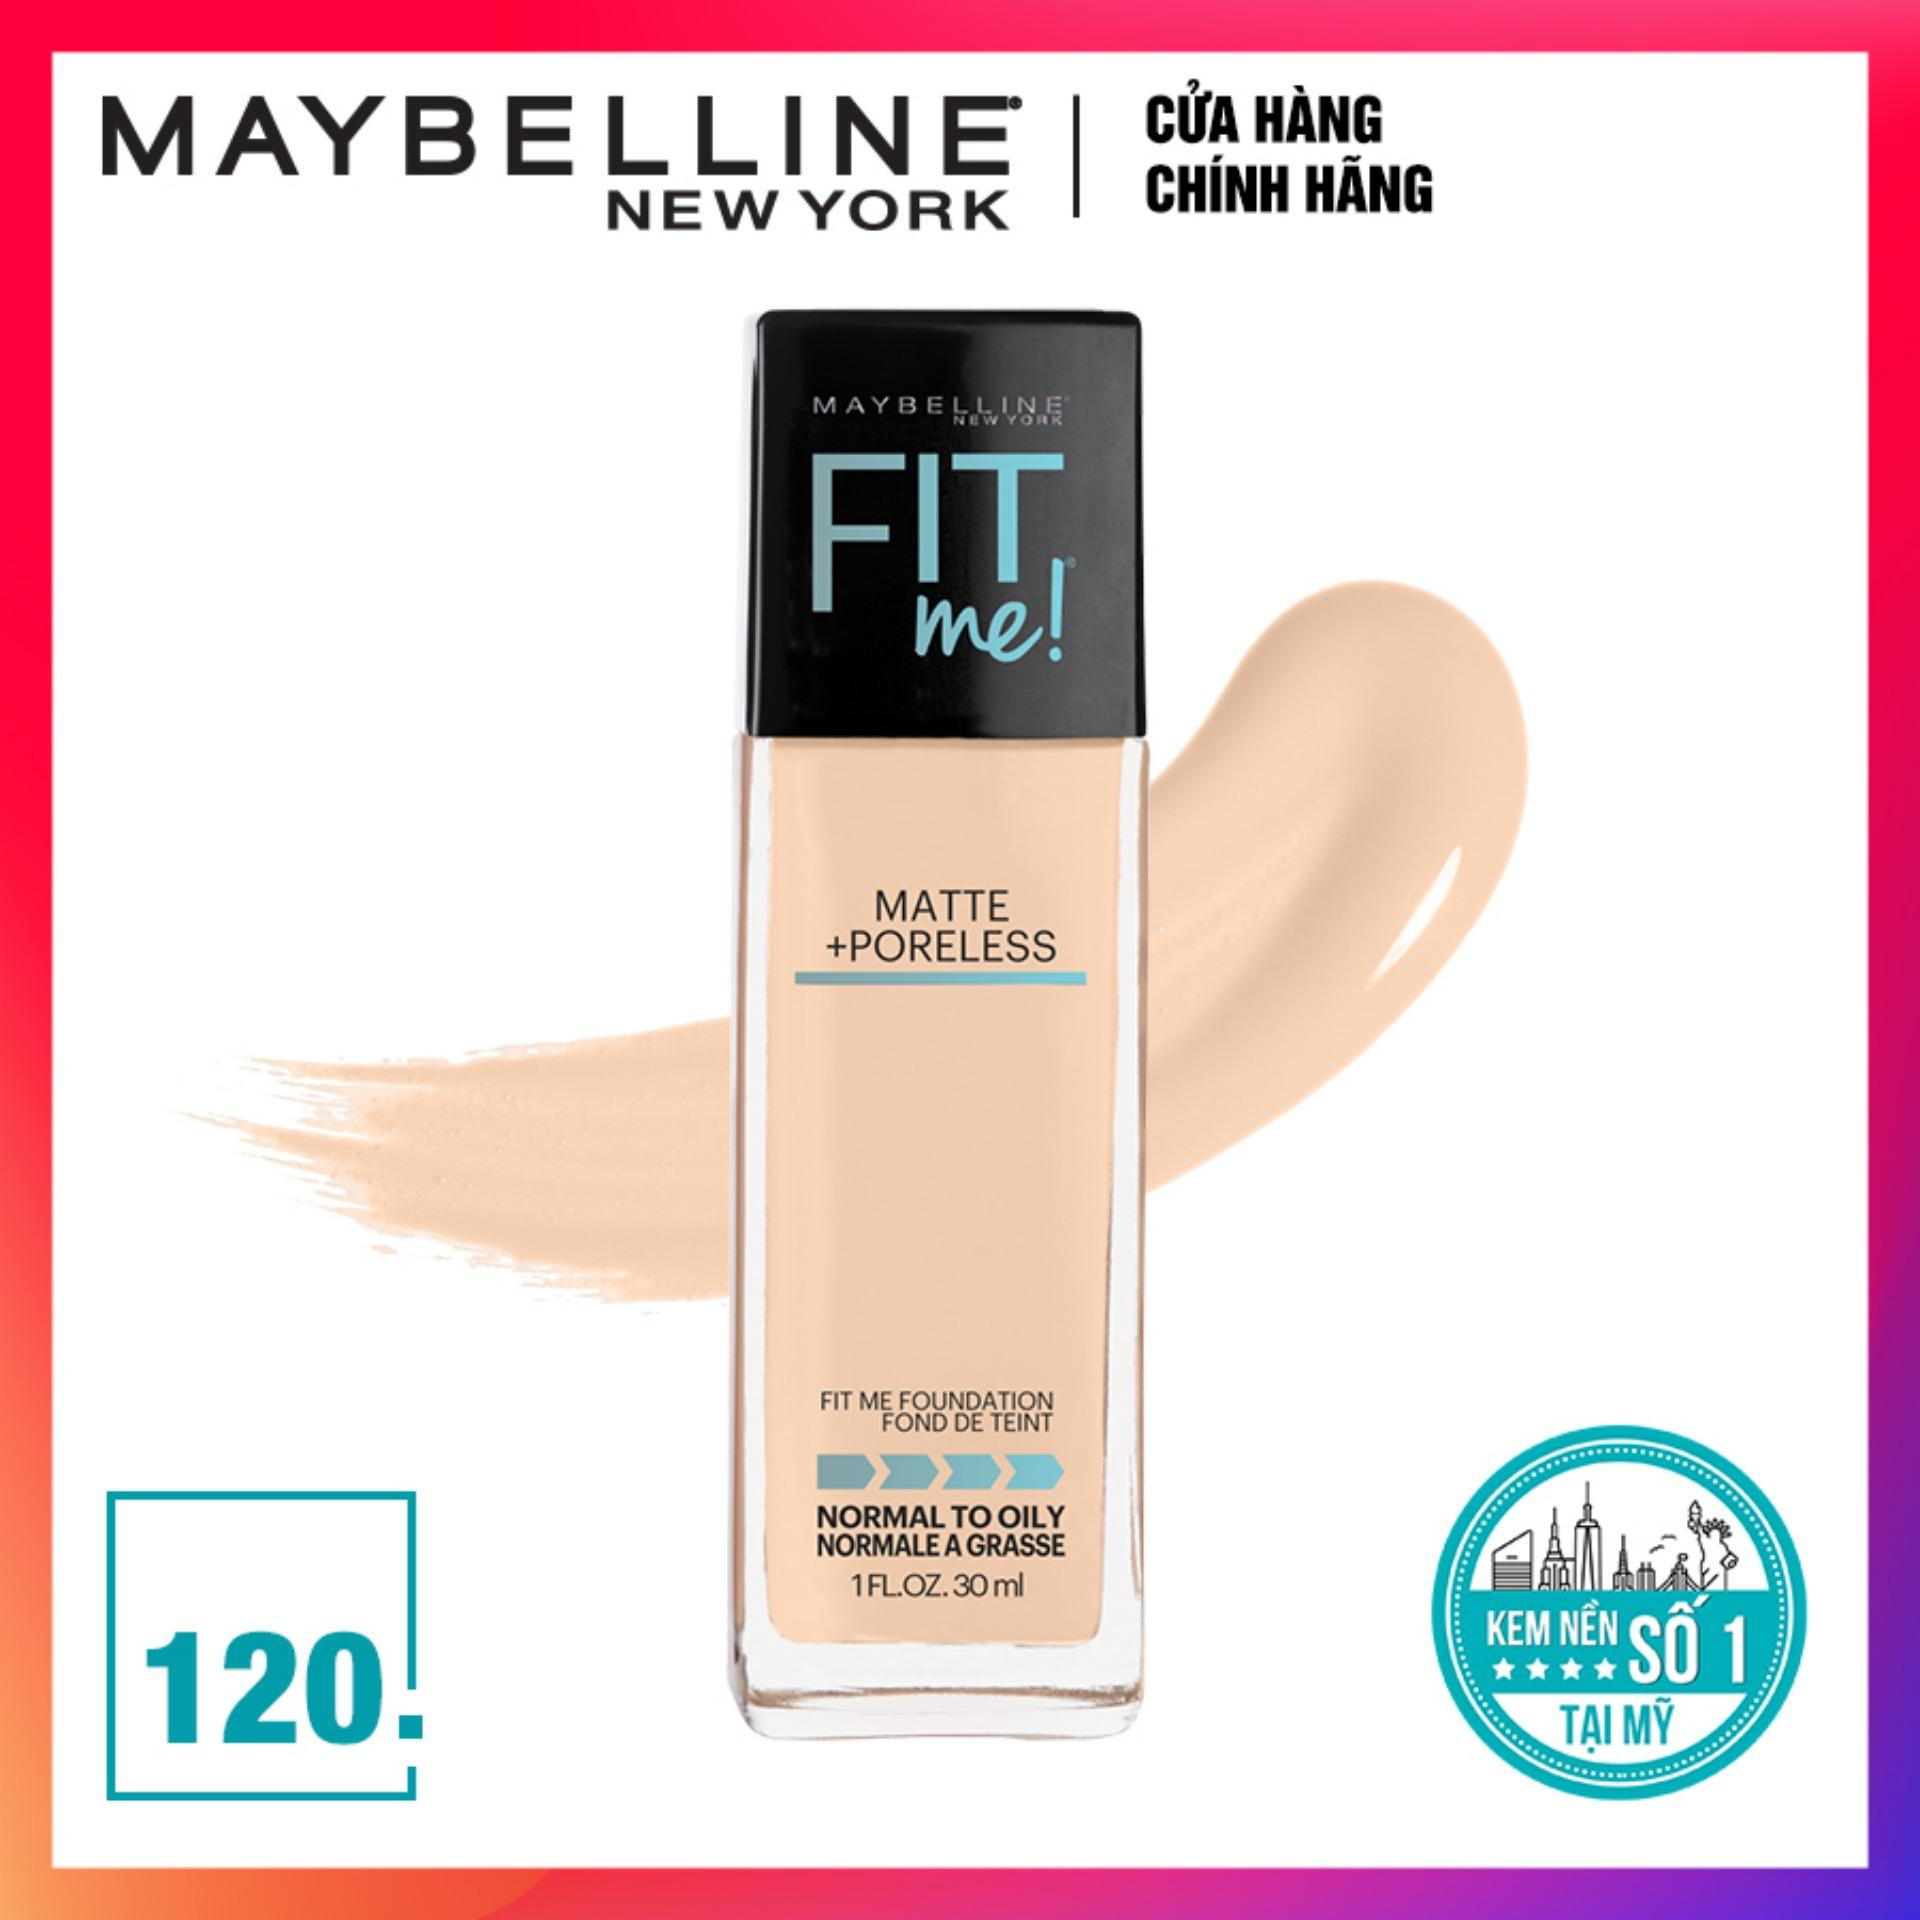 Bb Cc Cream Mua Gi Tt Nht Vietnam Wardah 30ml Kem Nn Mn L Tip Mu Da Maybelline New York Fit Me